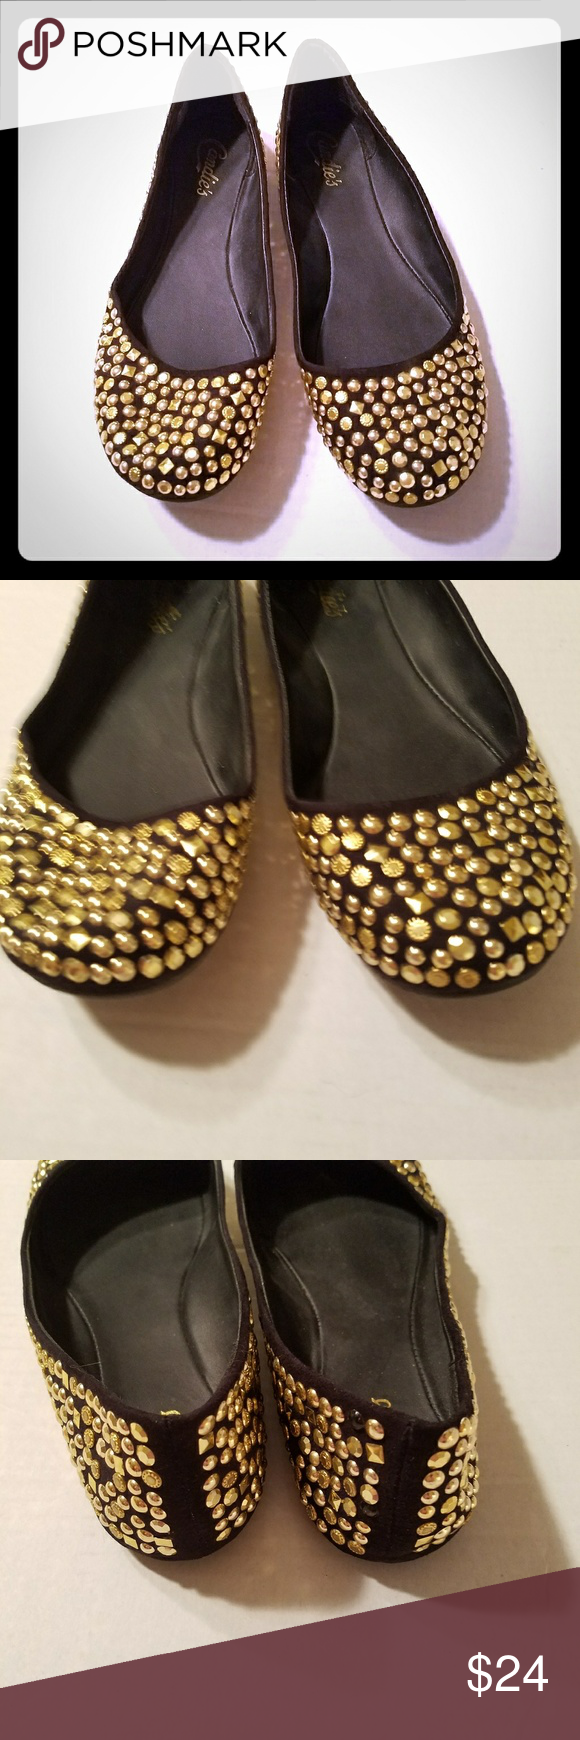 279ab4886bc5 Sz 8M Candies Camegan Gold Stud Ballet Flats Candies ballet flats Camegan  black gold studded shoes Women's sz 8 Manmade Gently worn See pics for  details, ...